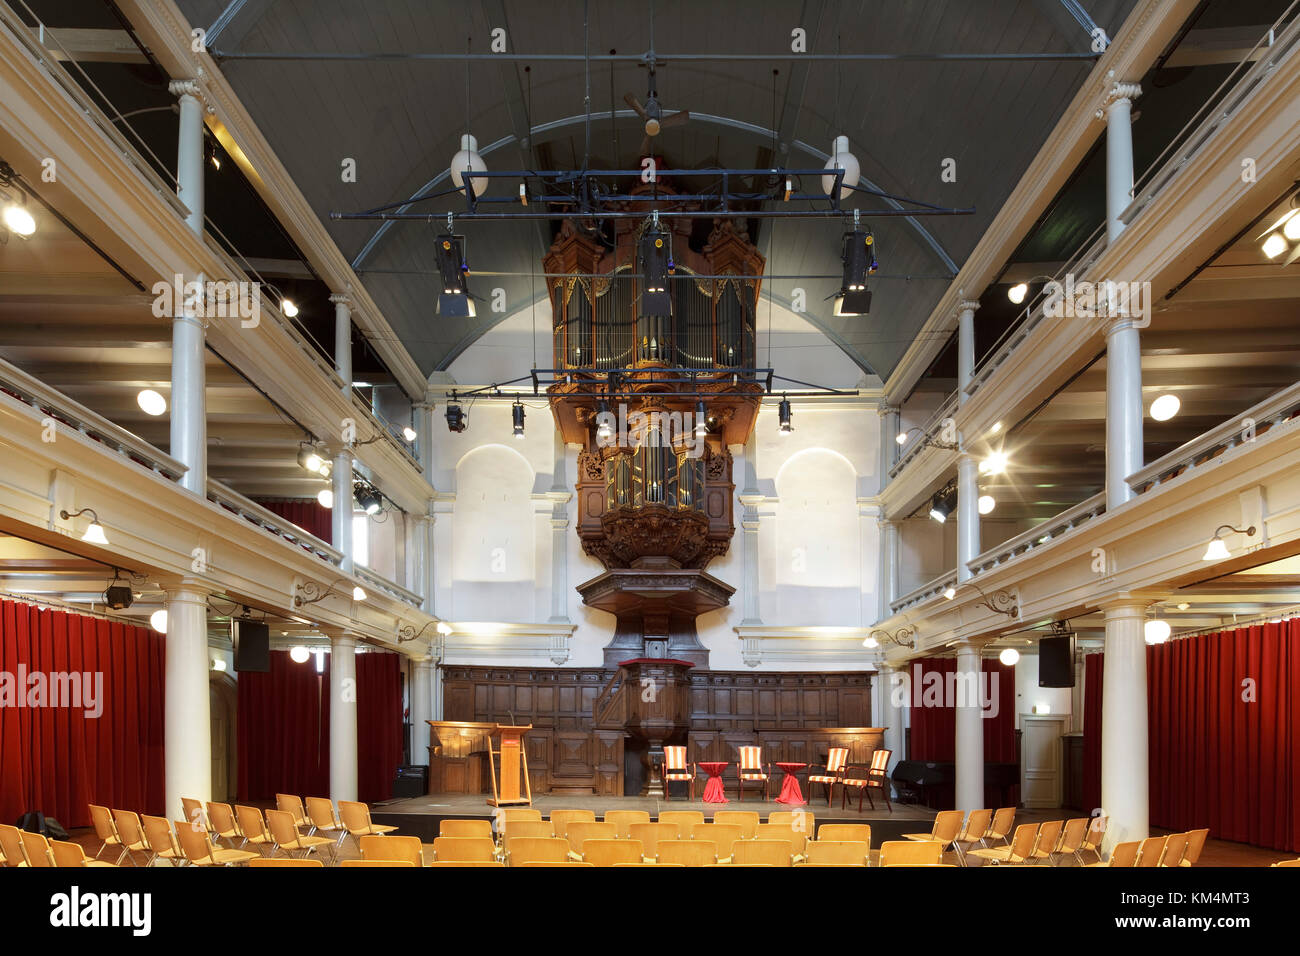 View from rear of auditorium towards stage and organ. De Rode Hoed Cultural Centre, Amsterdam, Netherlands. Architect: - Stock Image